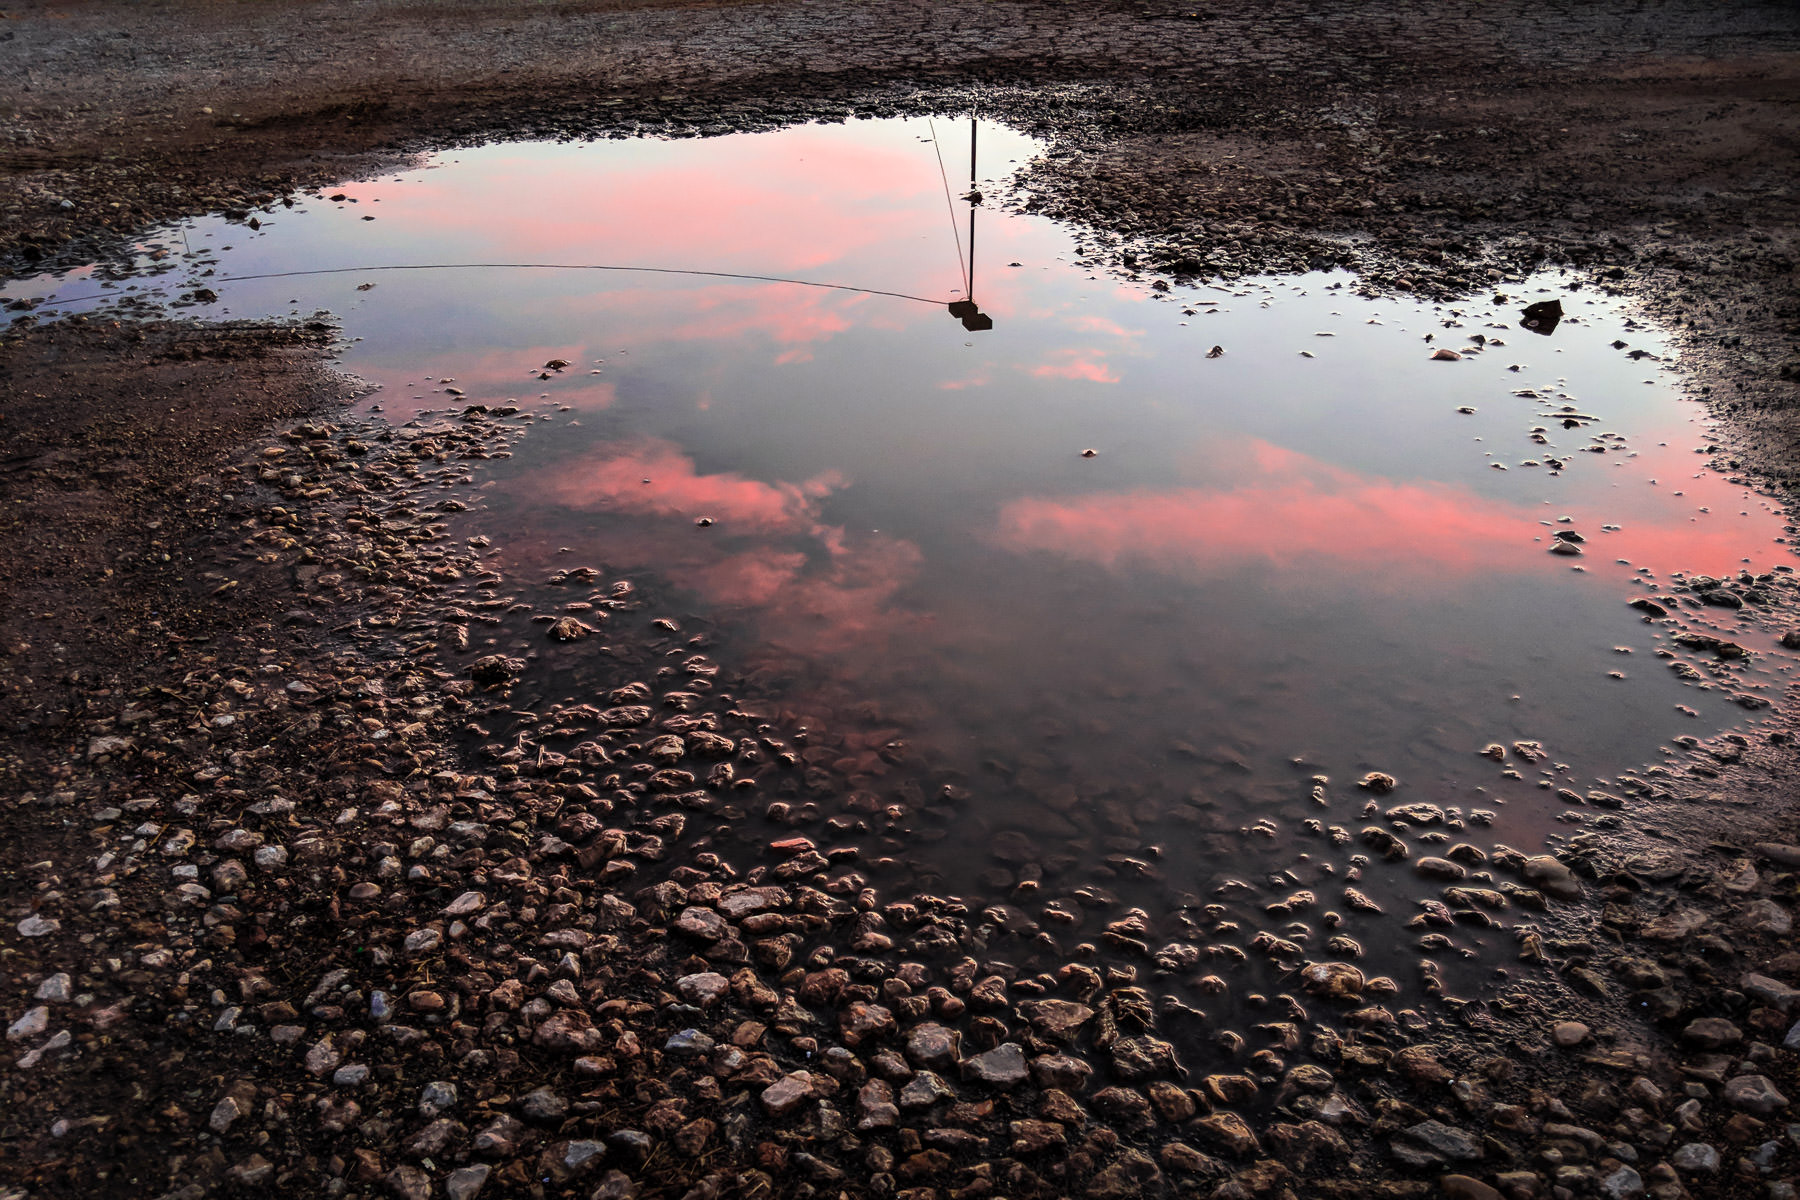 Evening clouds and a nearby light pole are reflected in a puddle in a parking lot in Downtown Dallas.